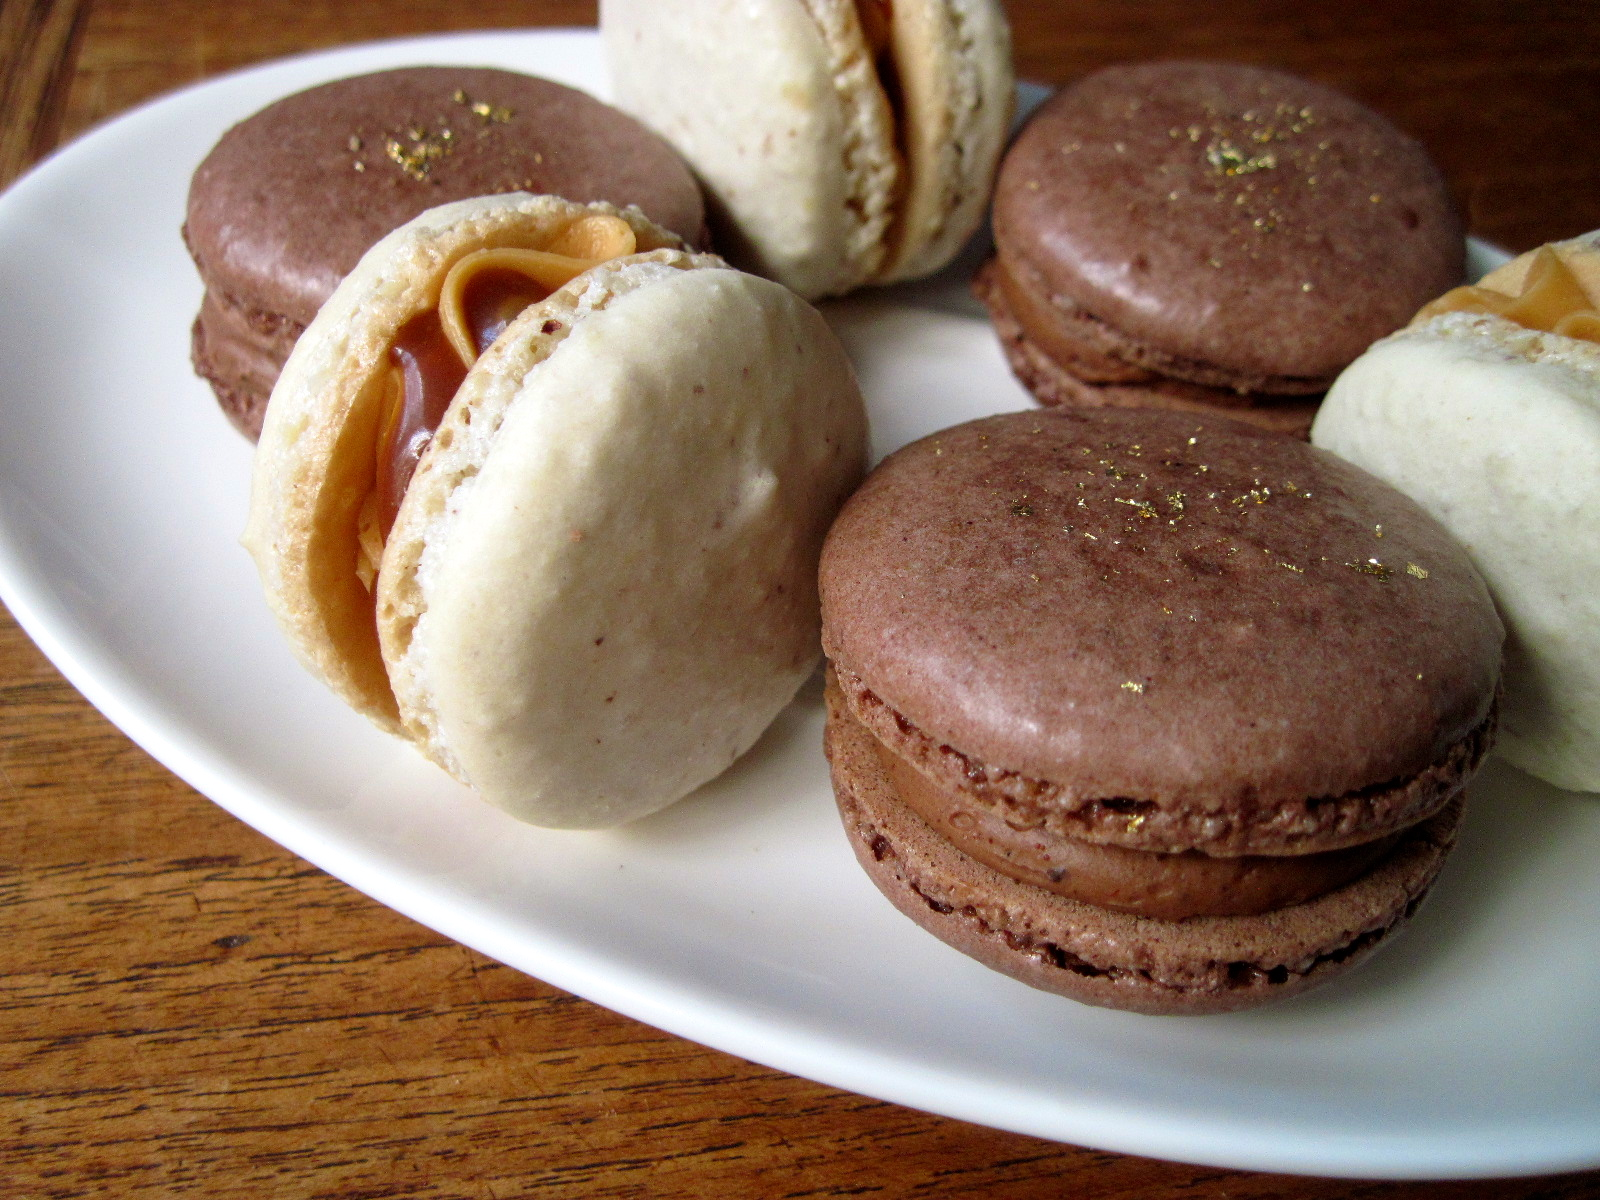 Salted Caramel and Mexican Chocolate Macarons